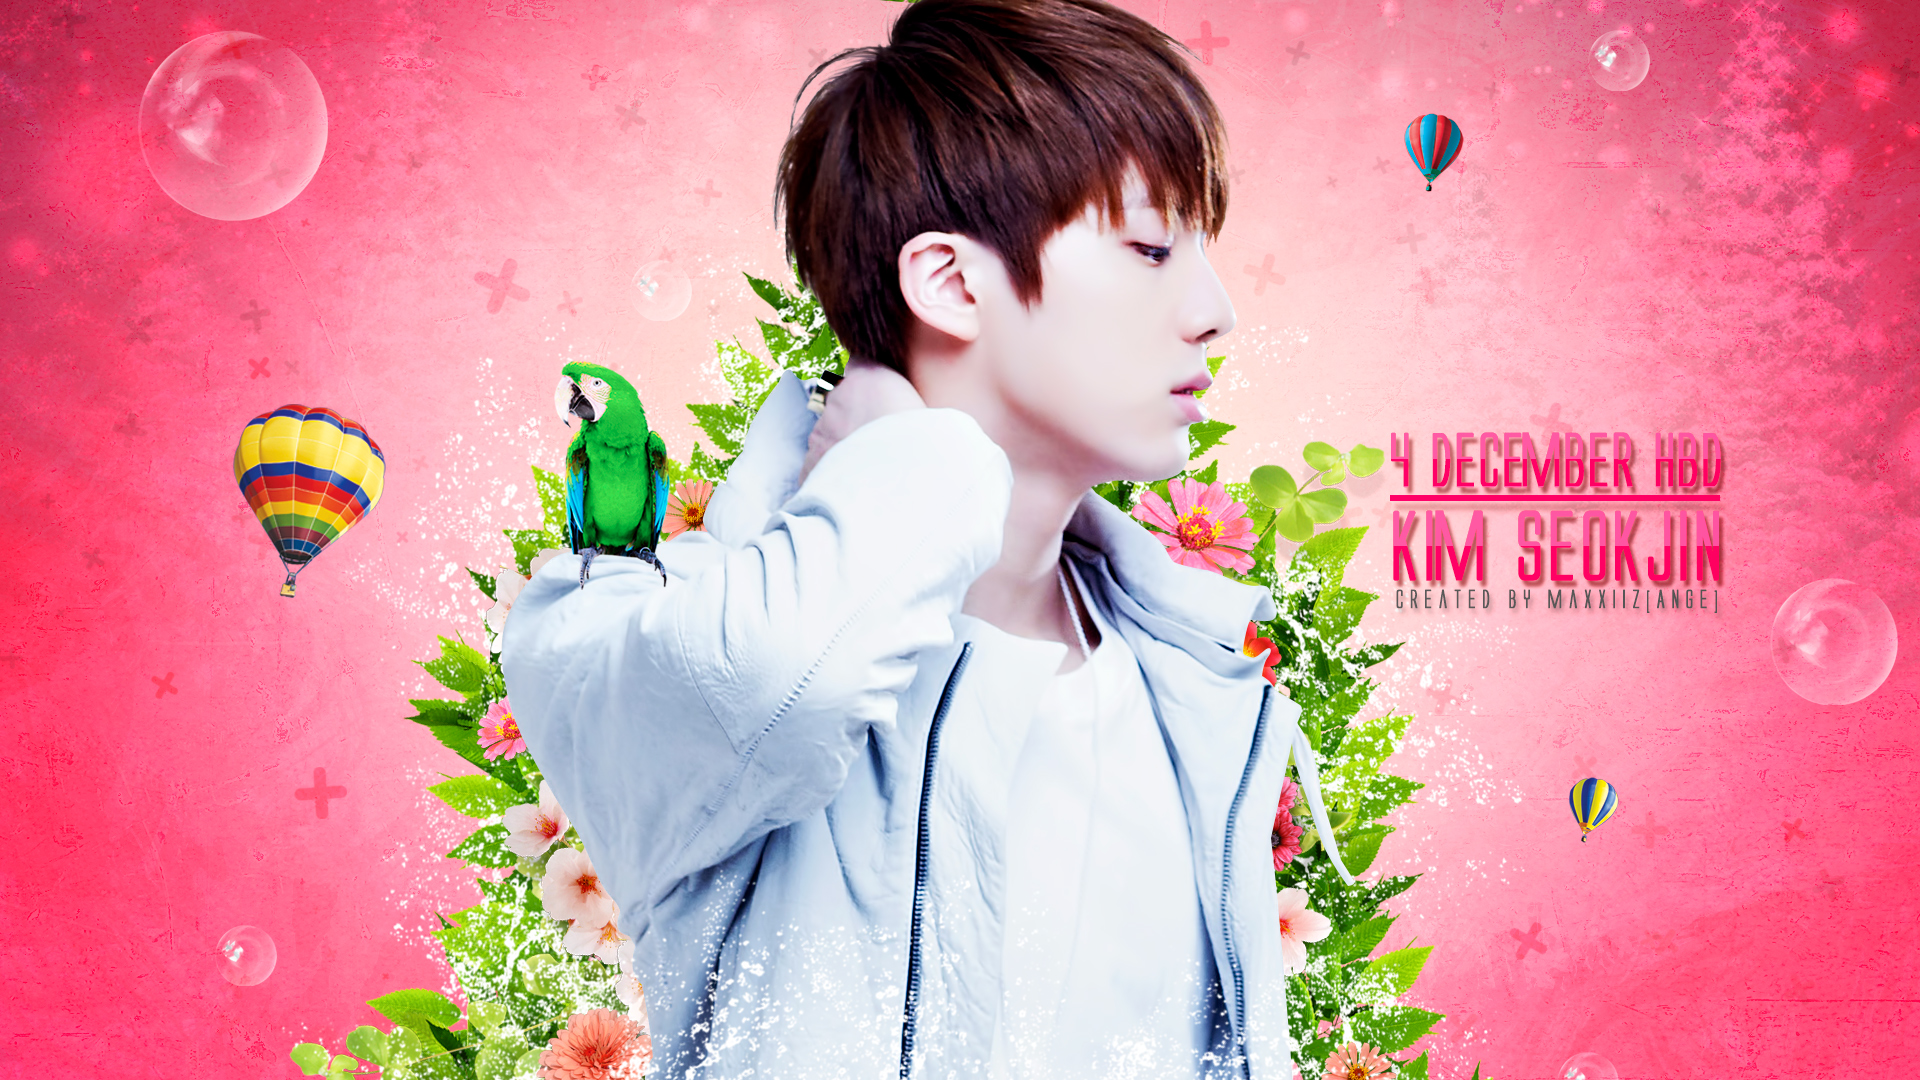 BTS images Bangtan Boys wallpaper photos 36259995 1920x1080